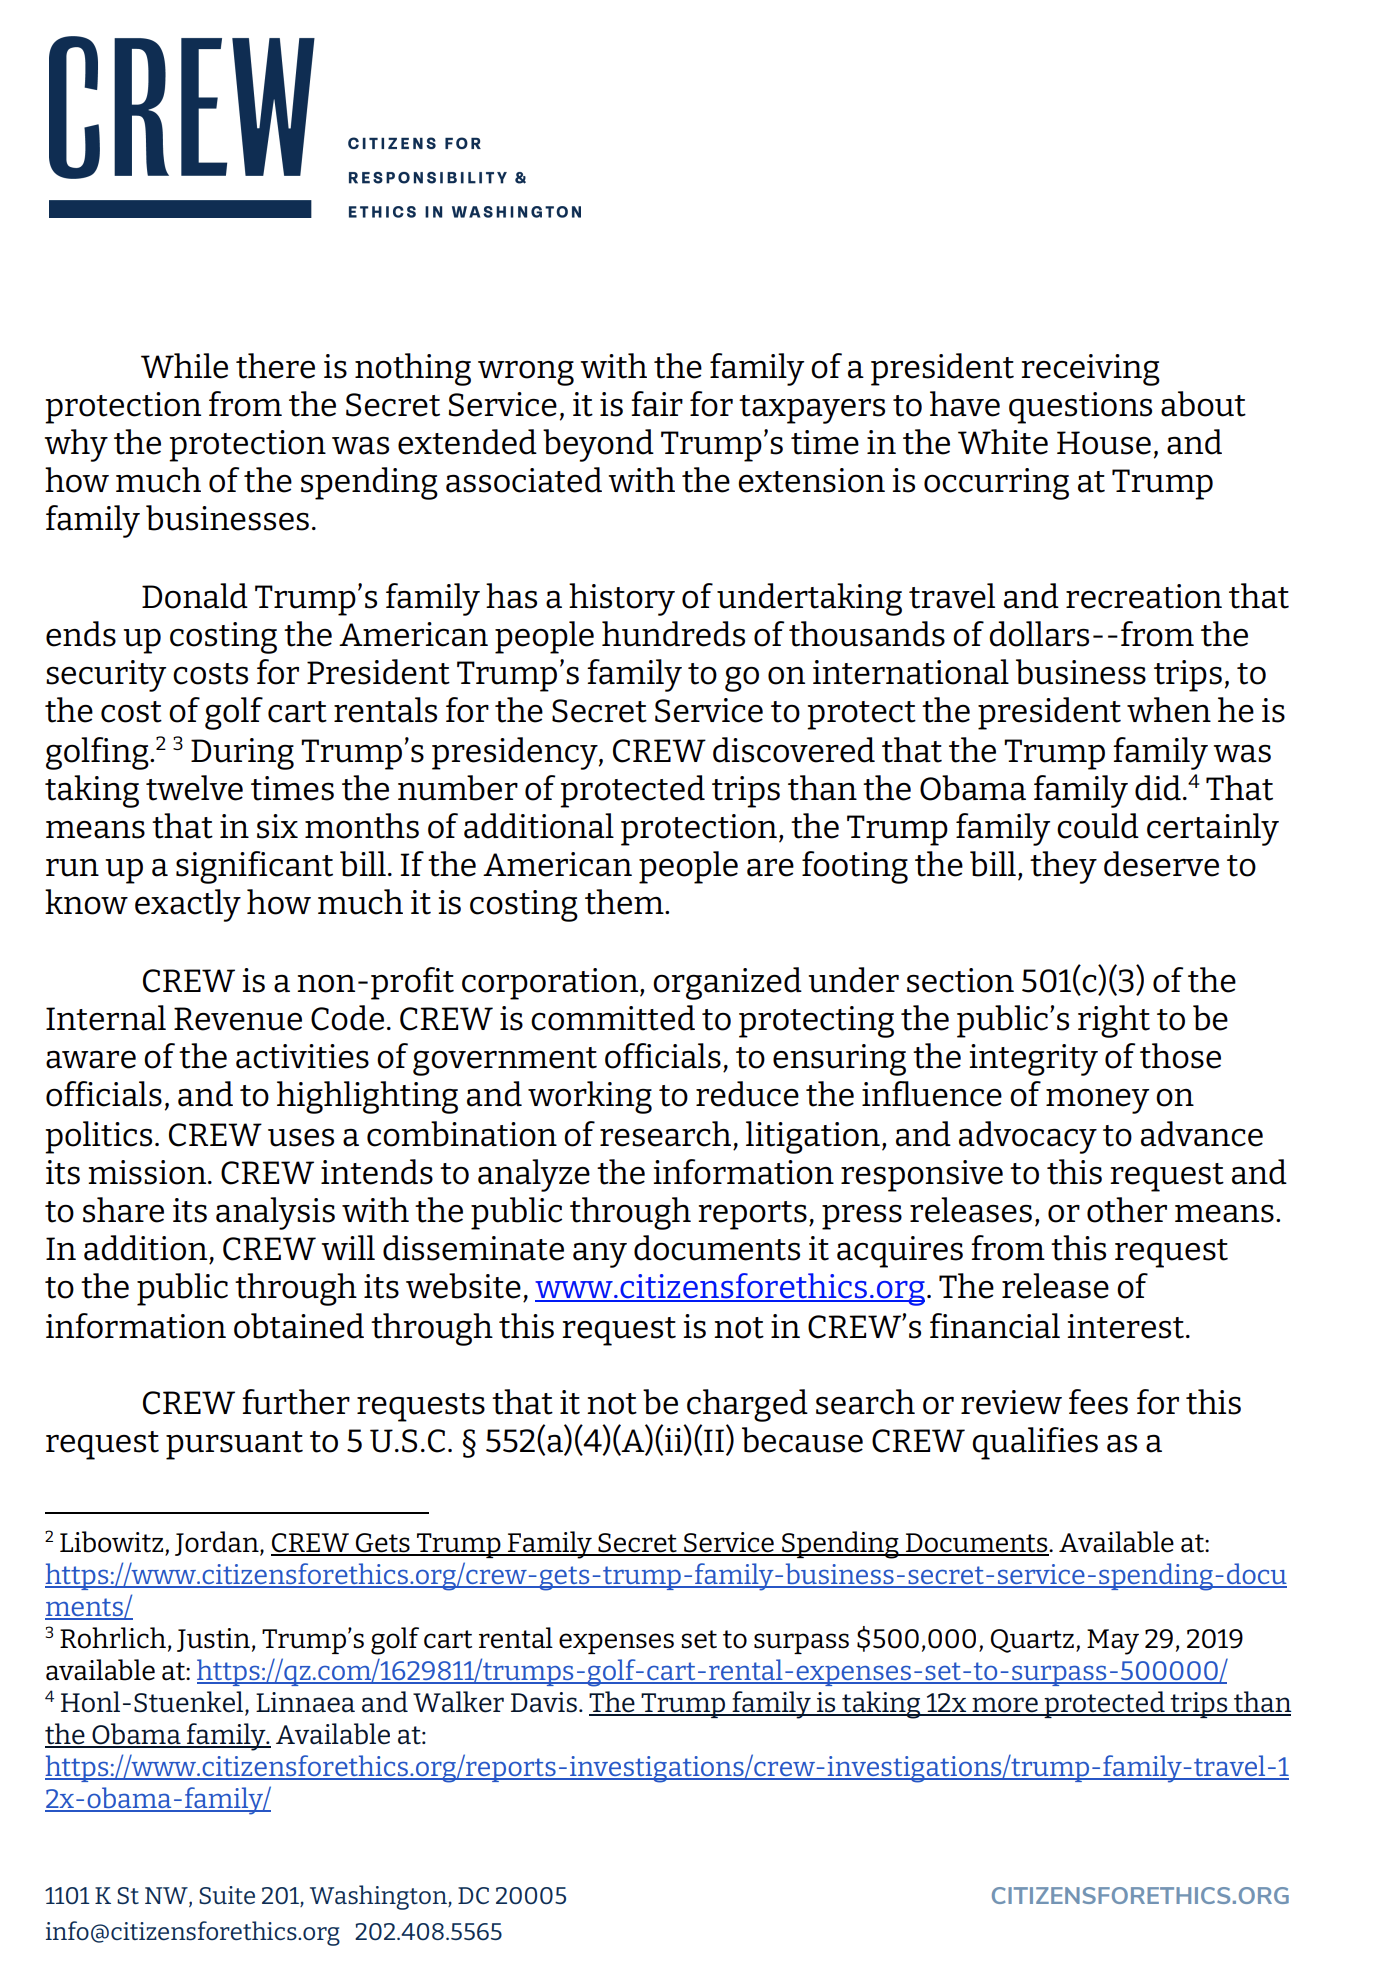 Screen-Shot-2021-02-28-at-11.06.59-AM Post-Presidency Spending Of Trump Family Put Under Investigation Donald Trump Featured National Security Politics Top Stories